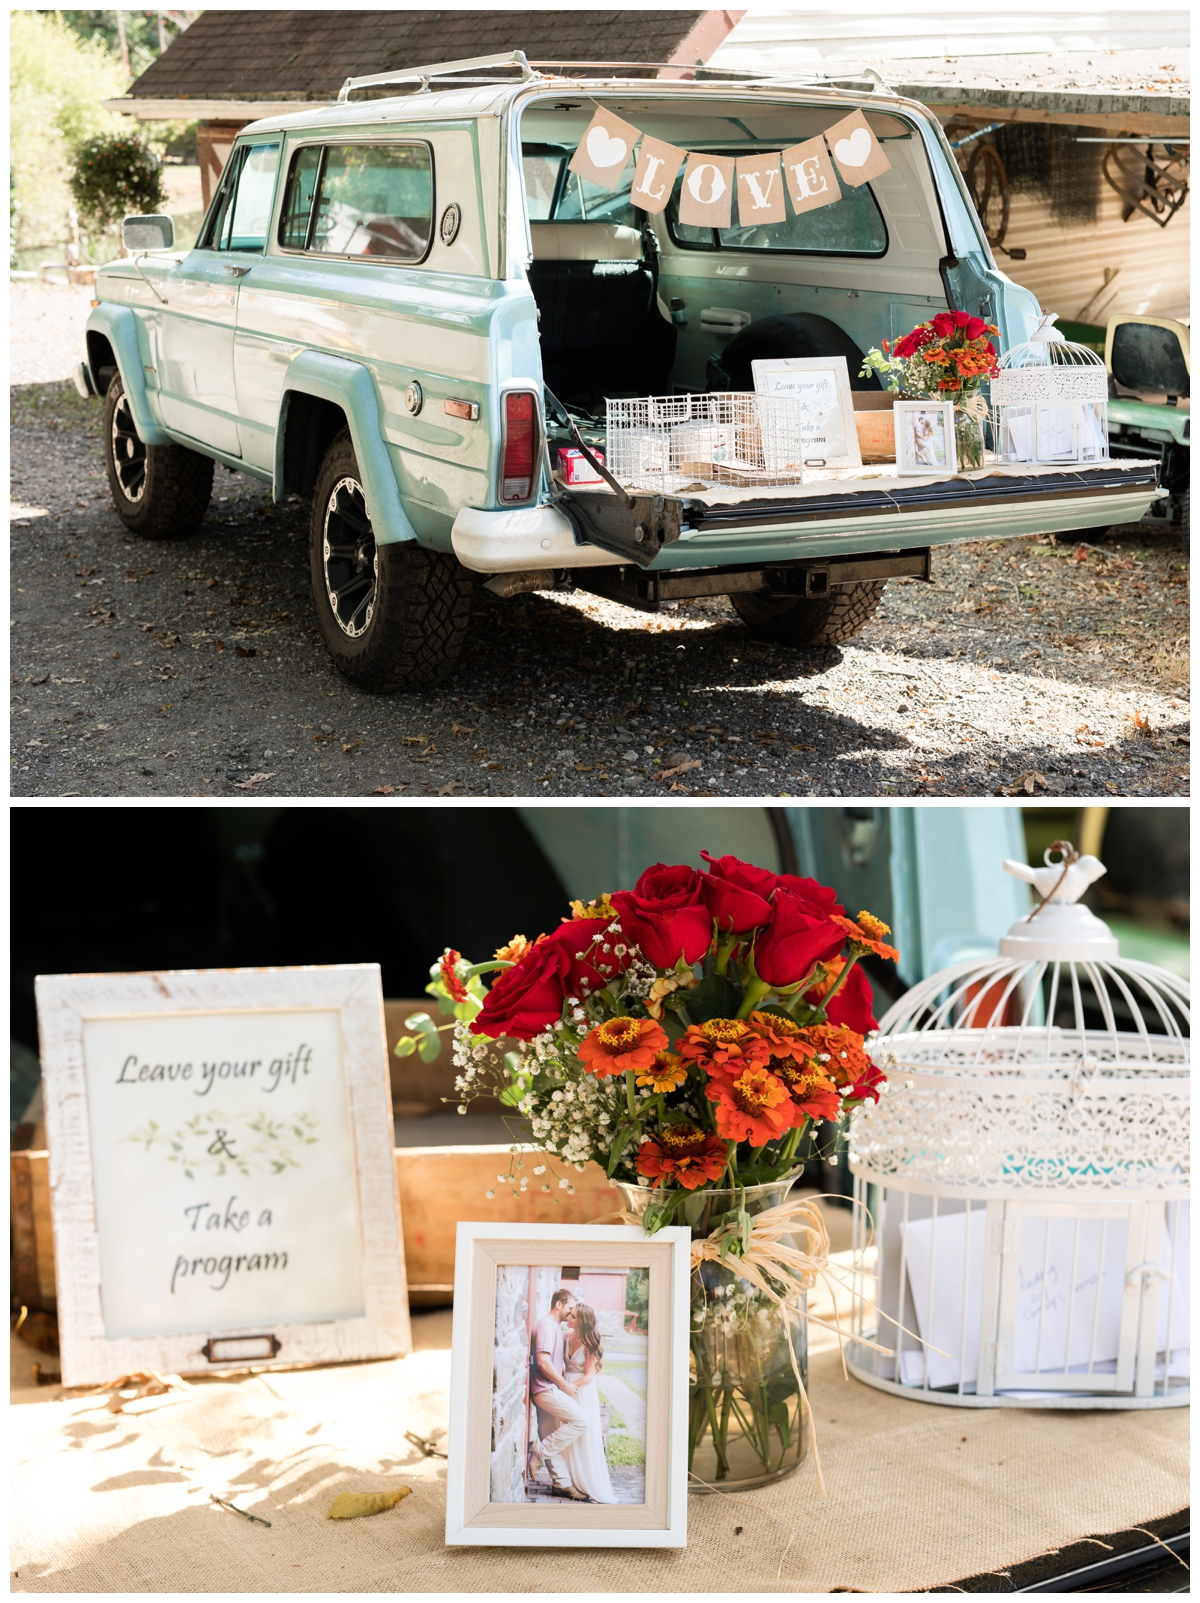 Vintage truck as the gift table at a shabby chic outdoor rustic wedding in the woods